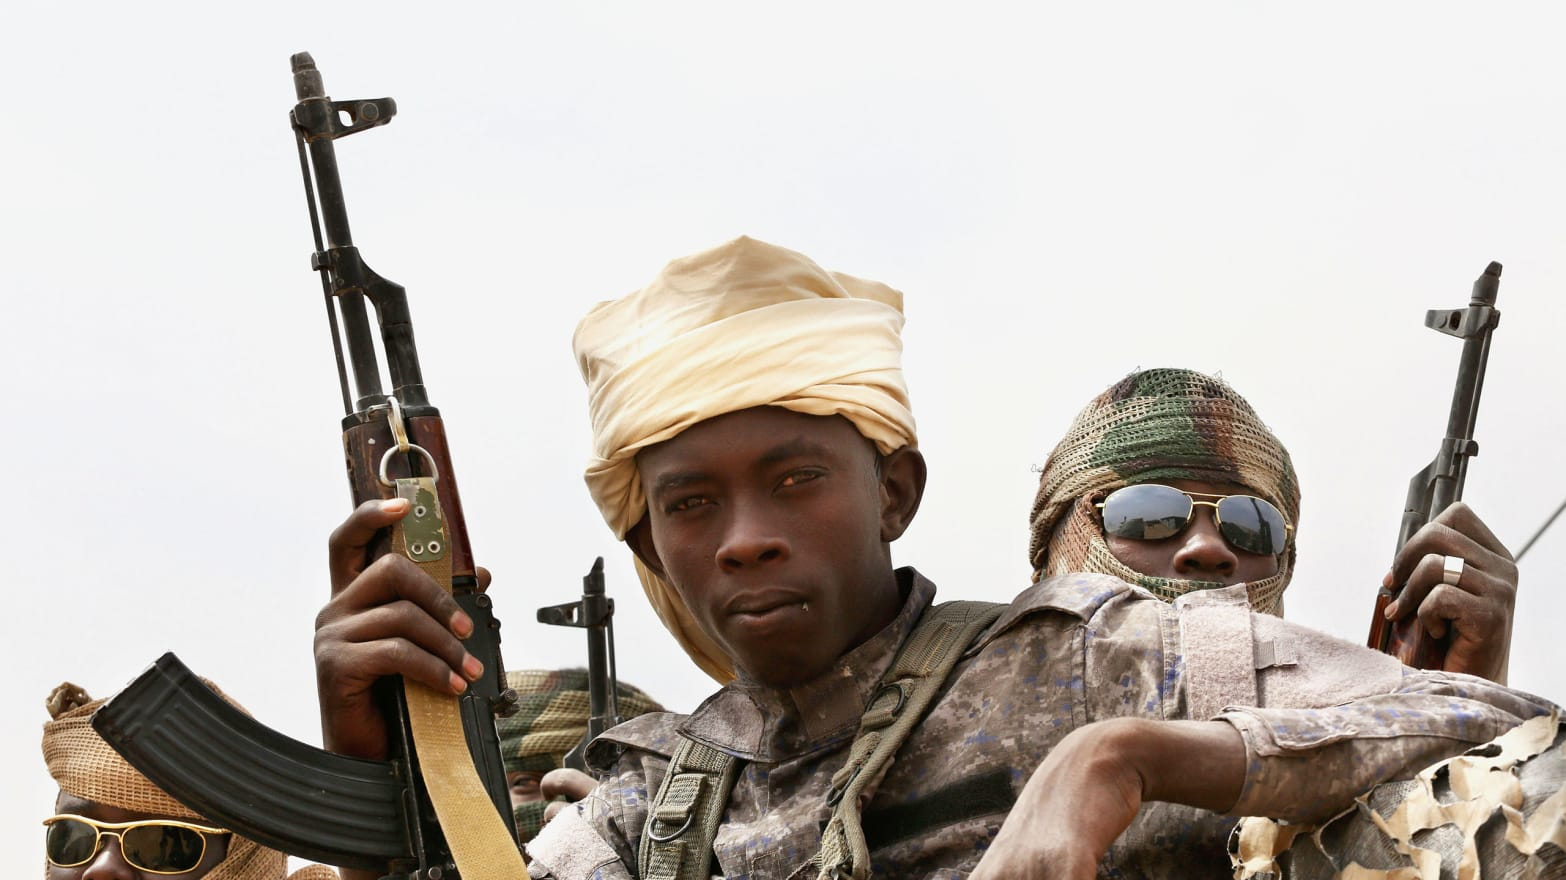 The Child Soldiers Fighting Boko Haram